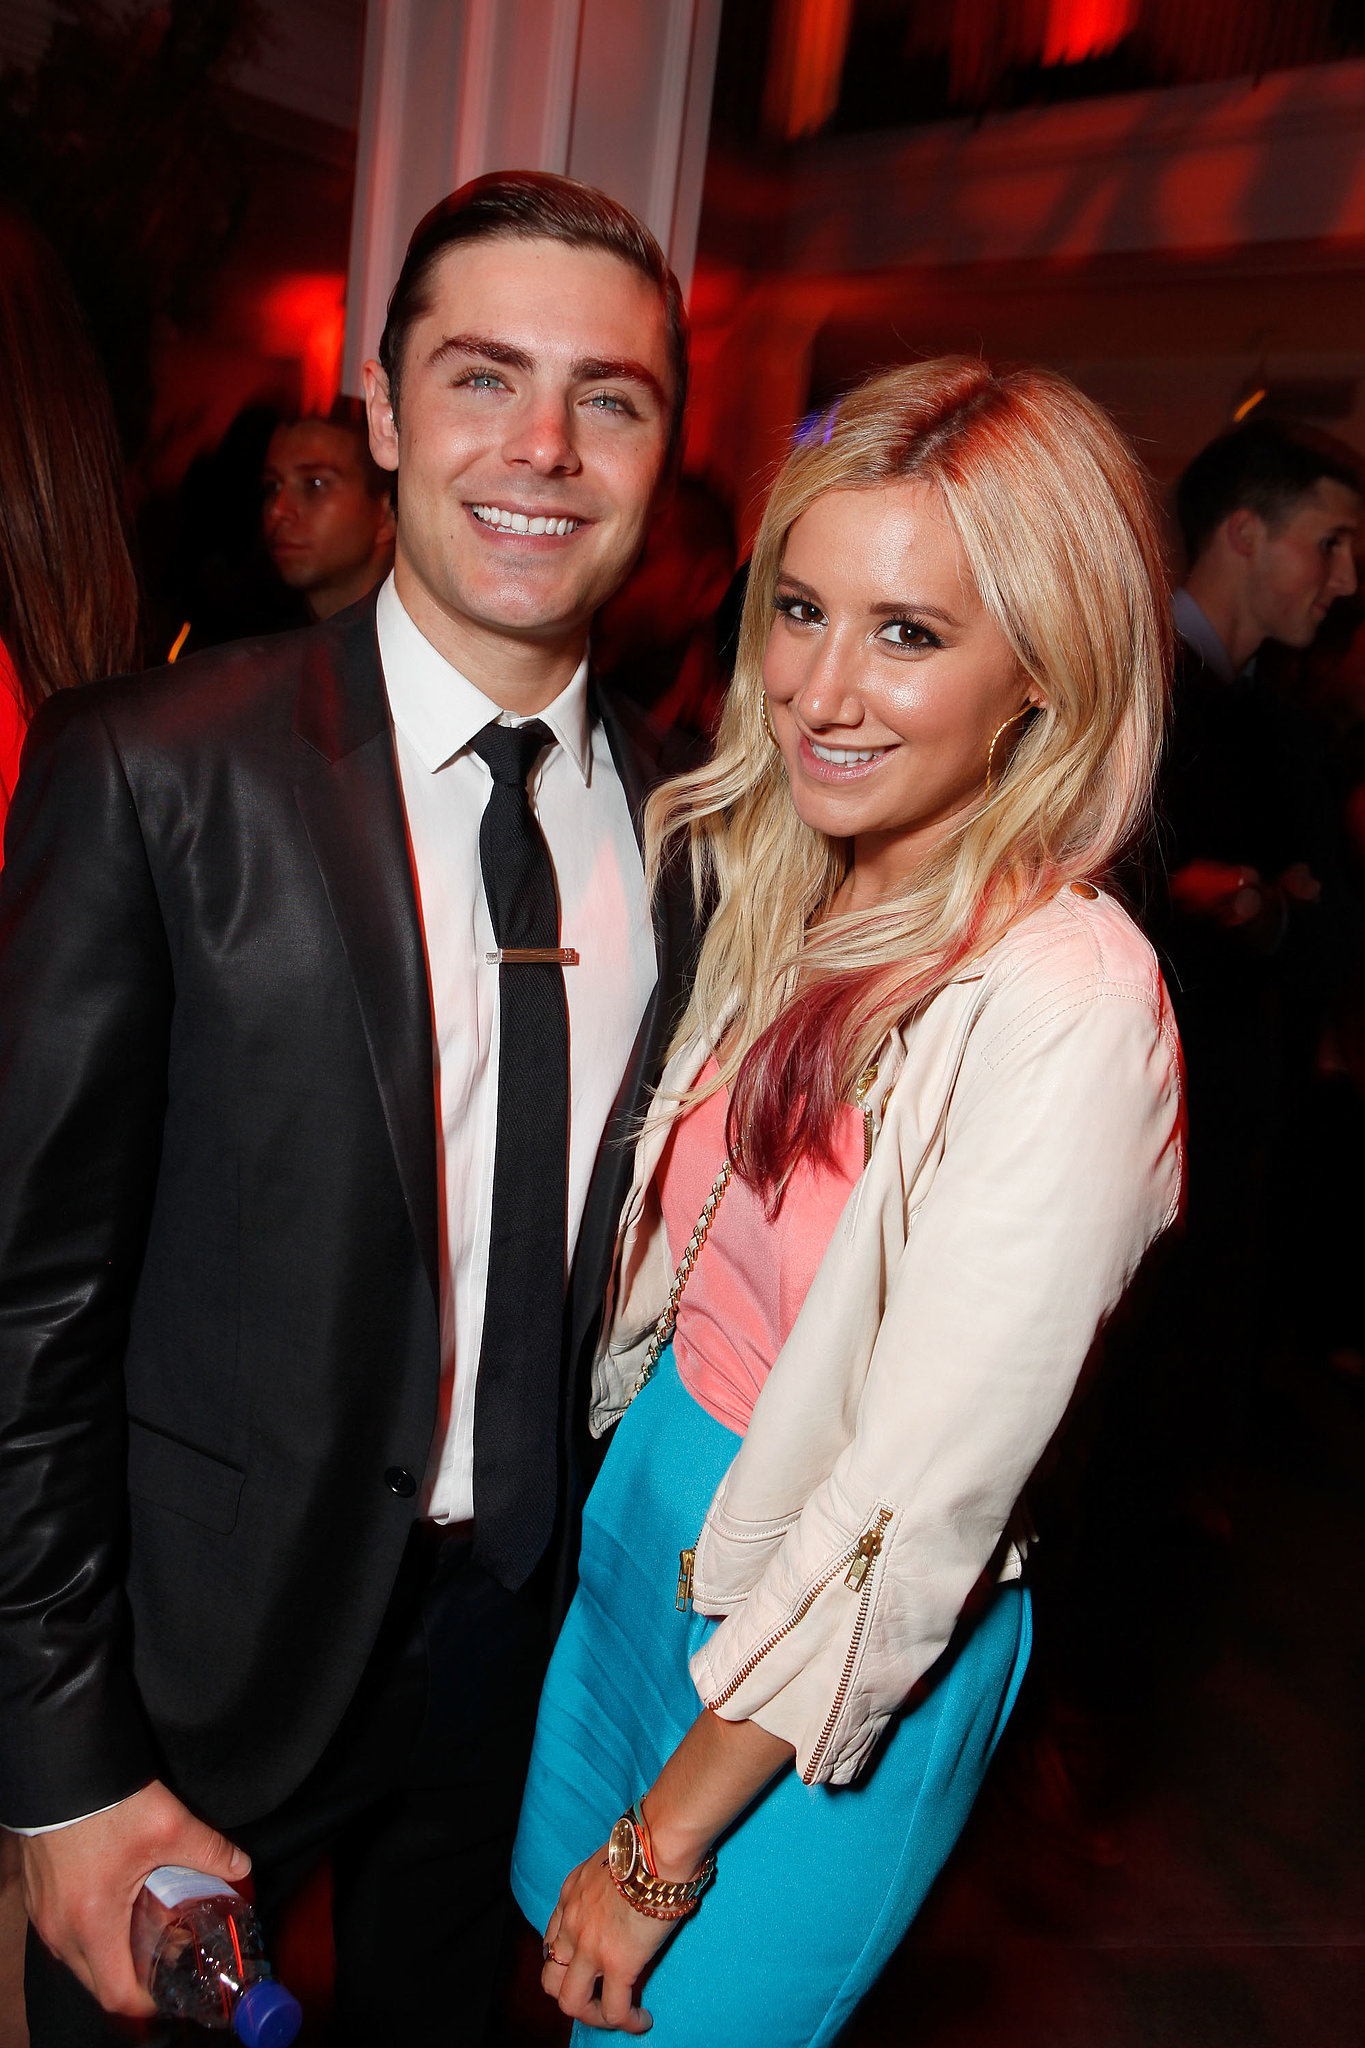 Zac Efron and Ashley Tisdale have been buds since their High School Musical days and still spend time together. Ashley even showed her support for Zac at his Lucky One premiere in April 2012.